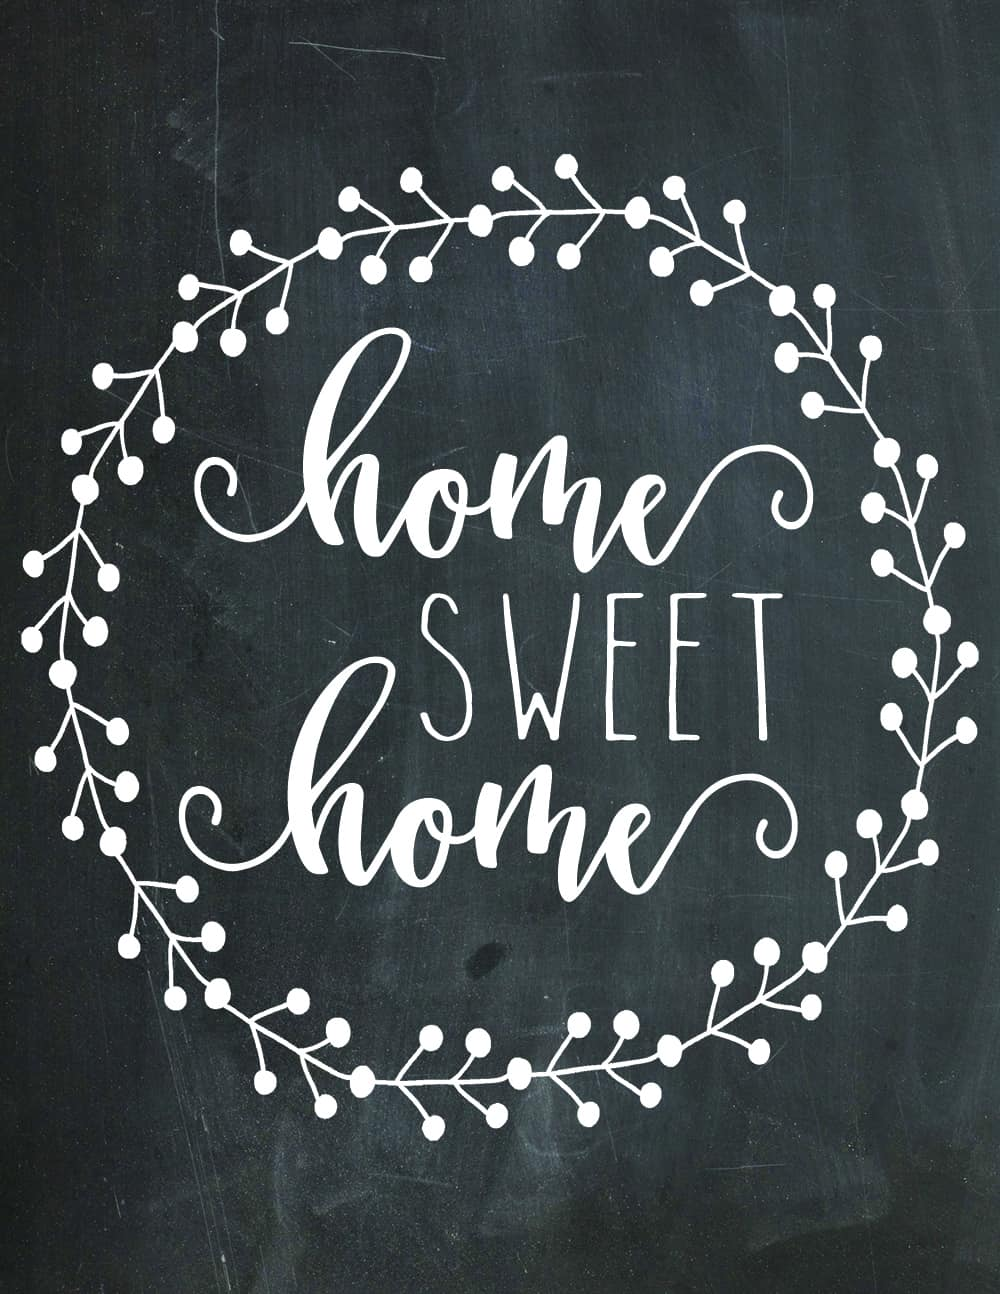 photo relating to Free Chalkboard Printable known as Down load This Totally free Dwelling Cute Property Chalkboard Printable Listed here Presently